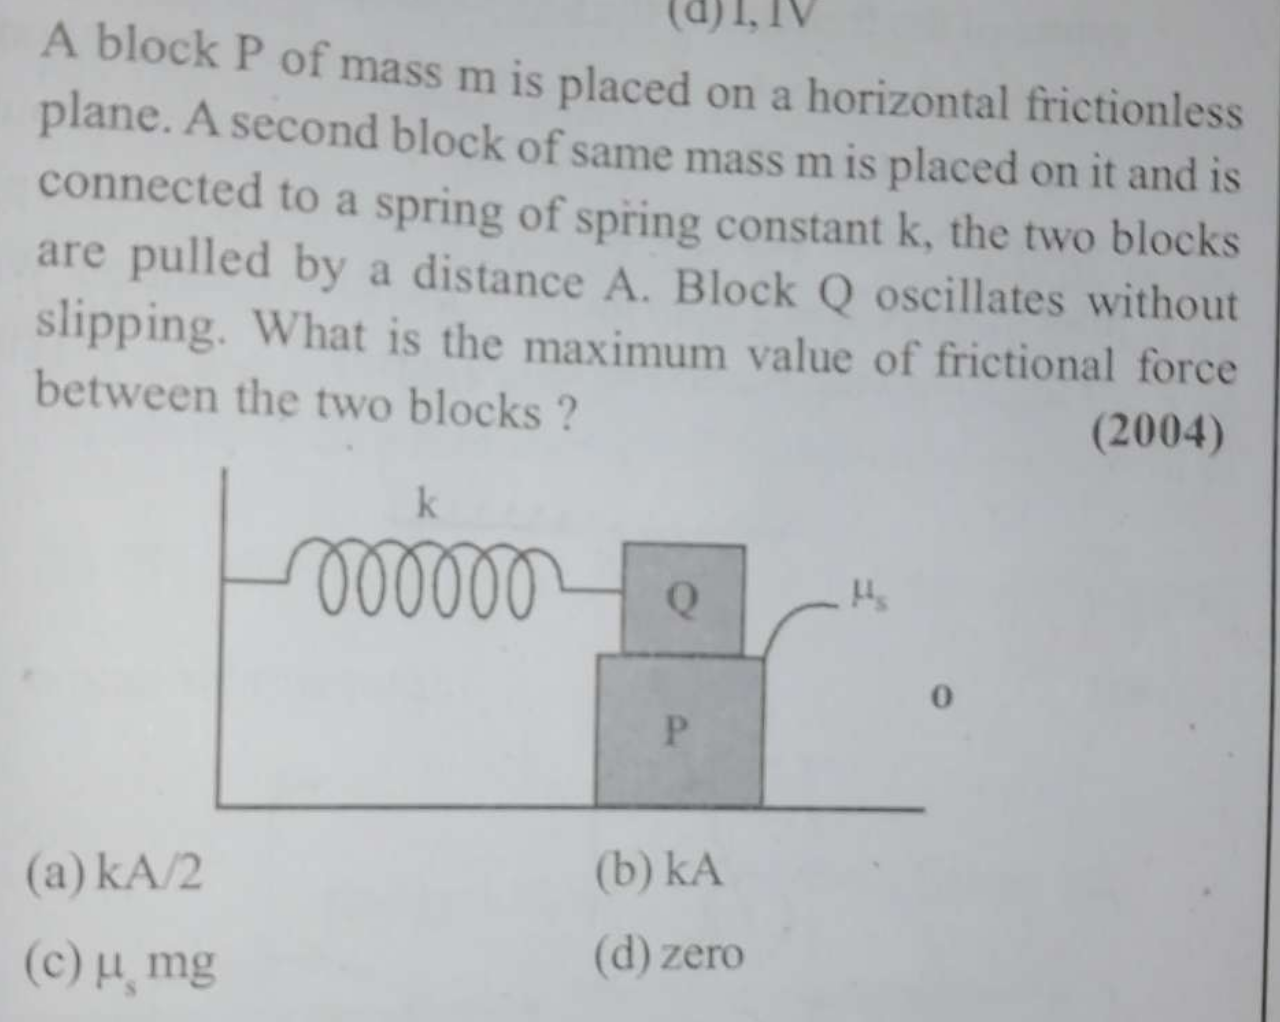 A block P of mass m is placed on a horizontal frictionless plane. A second block of same mass m is placed on it and is connected to a spring of spring constant k, th